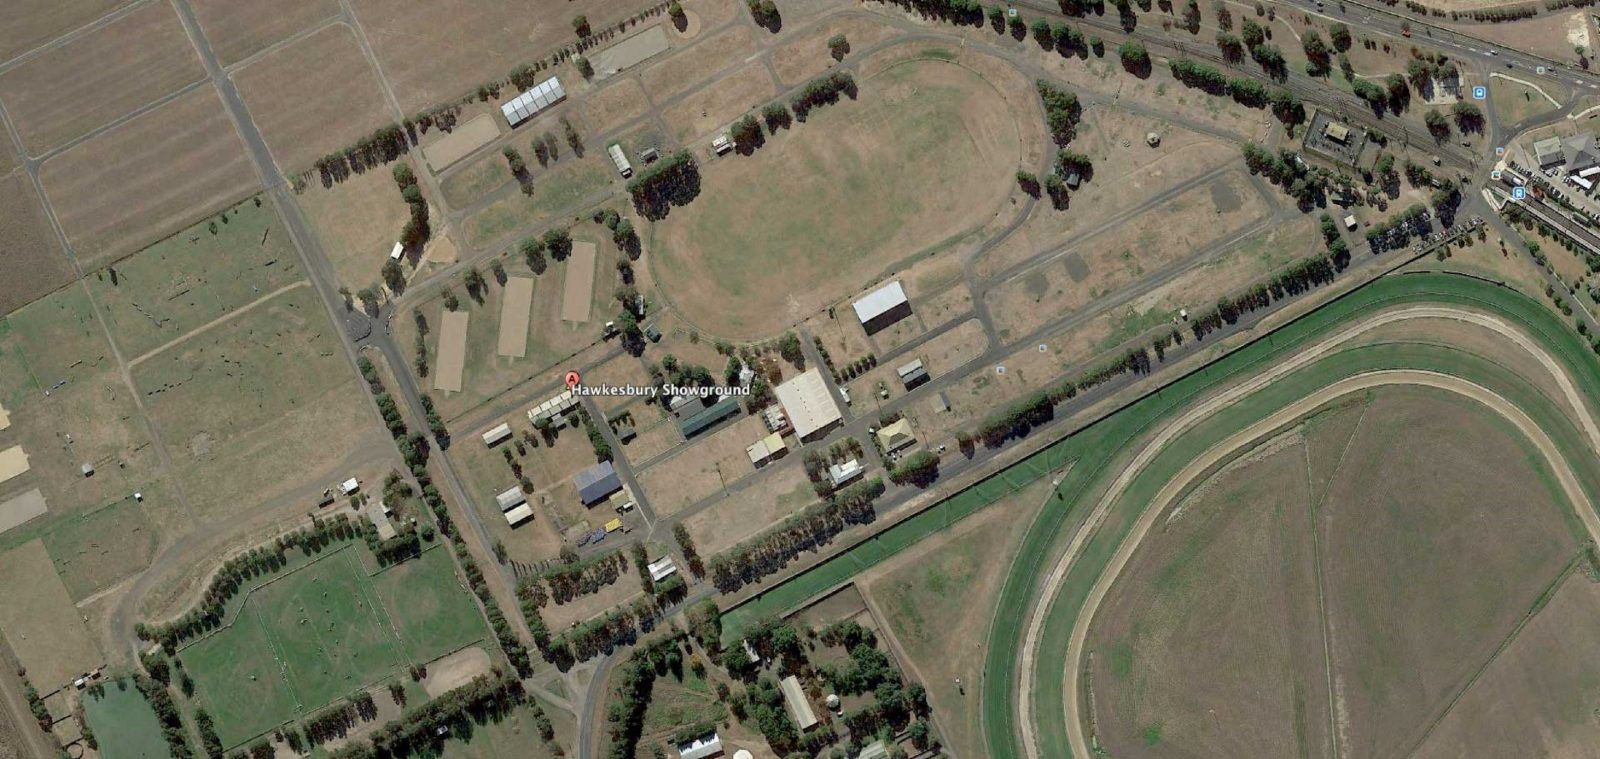 This shows the entire area of the showground